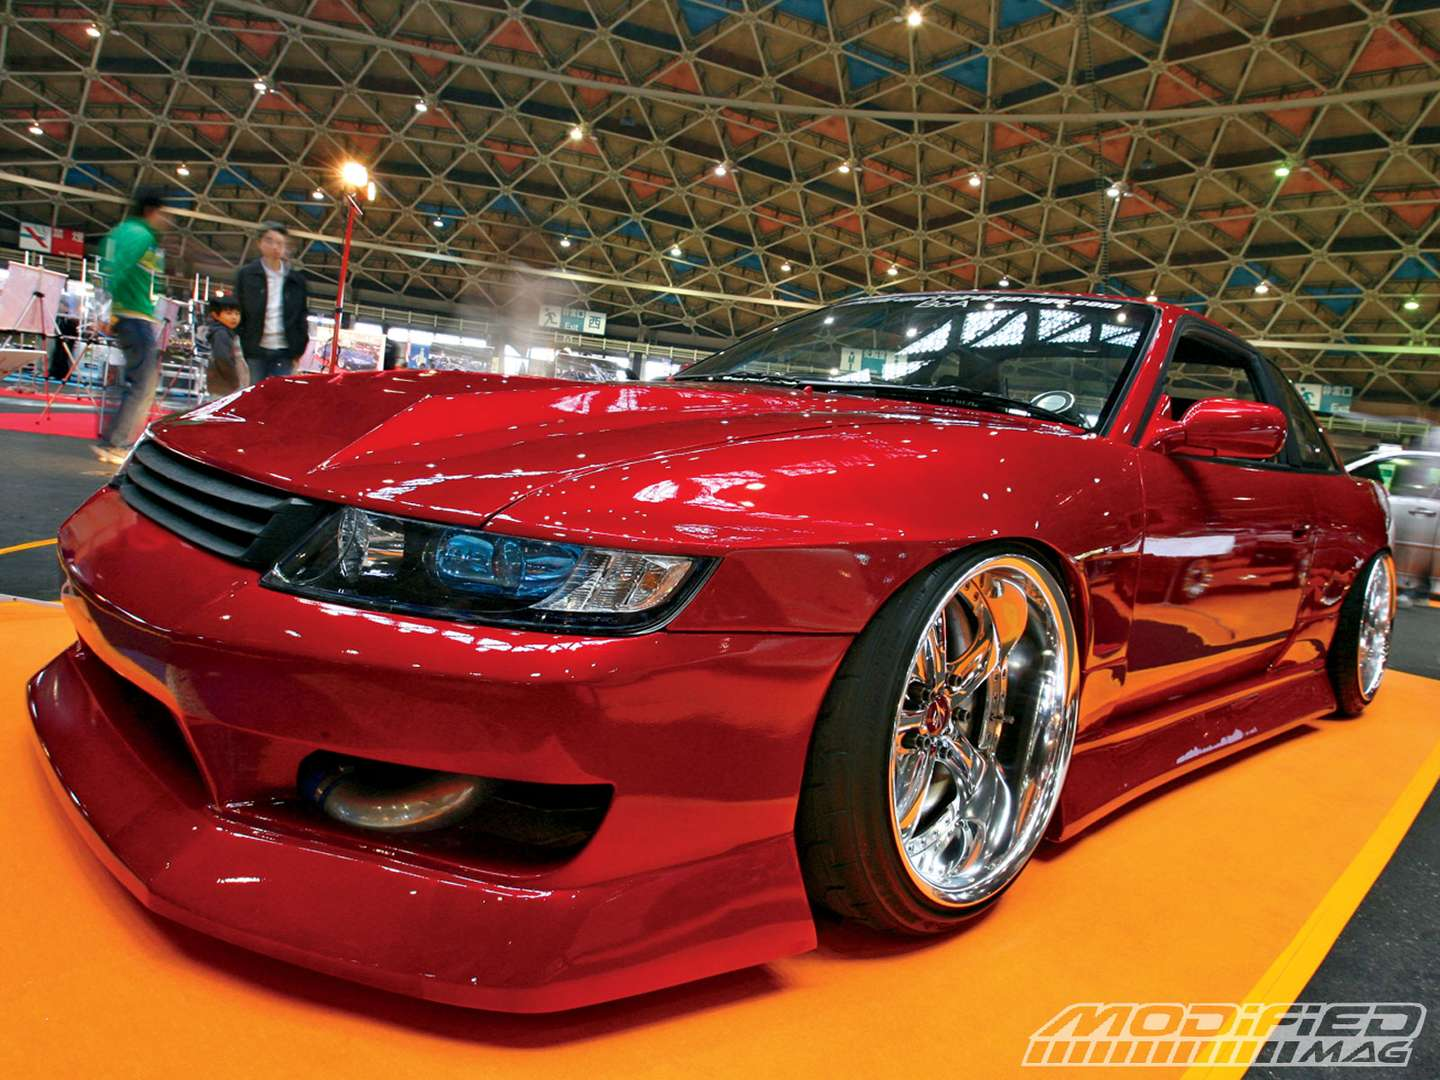 Nissan S13 #8813191